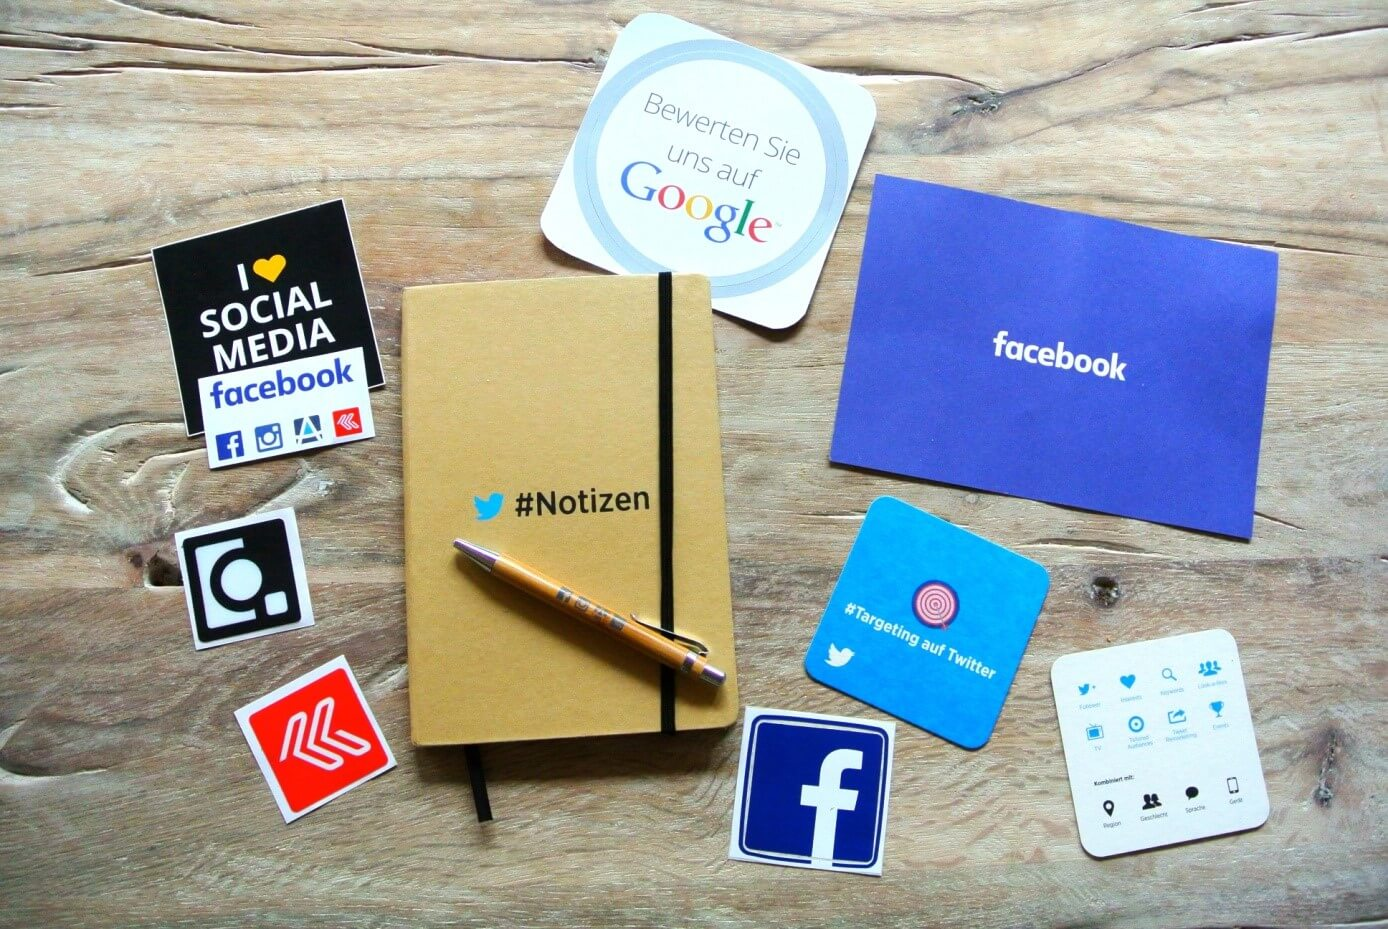 social media icons and logos on a paper